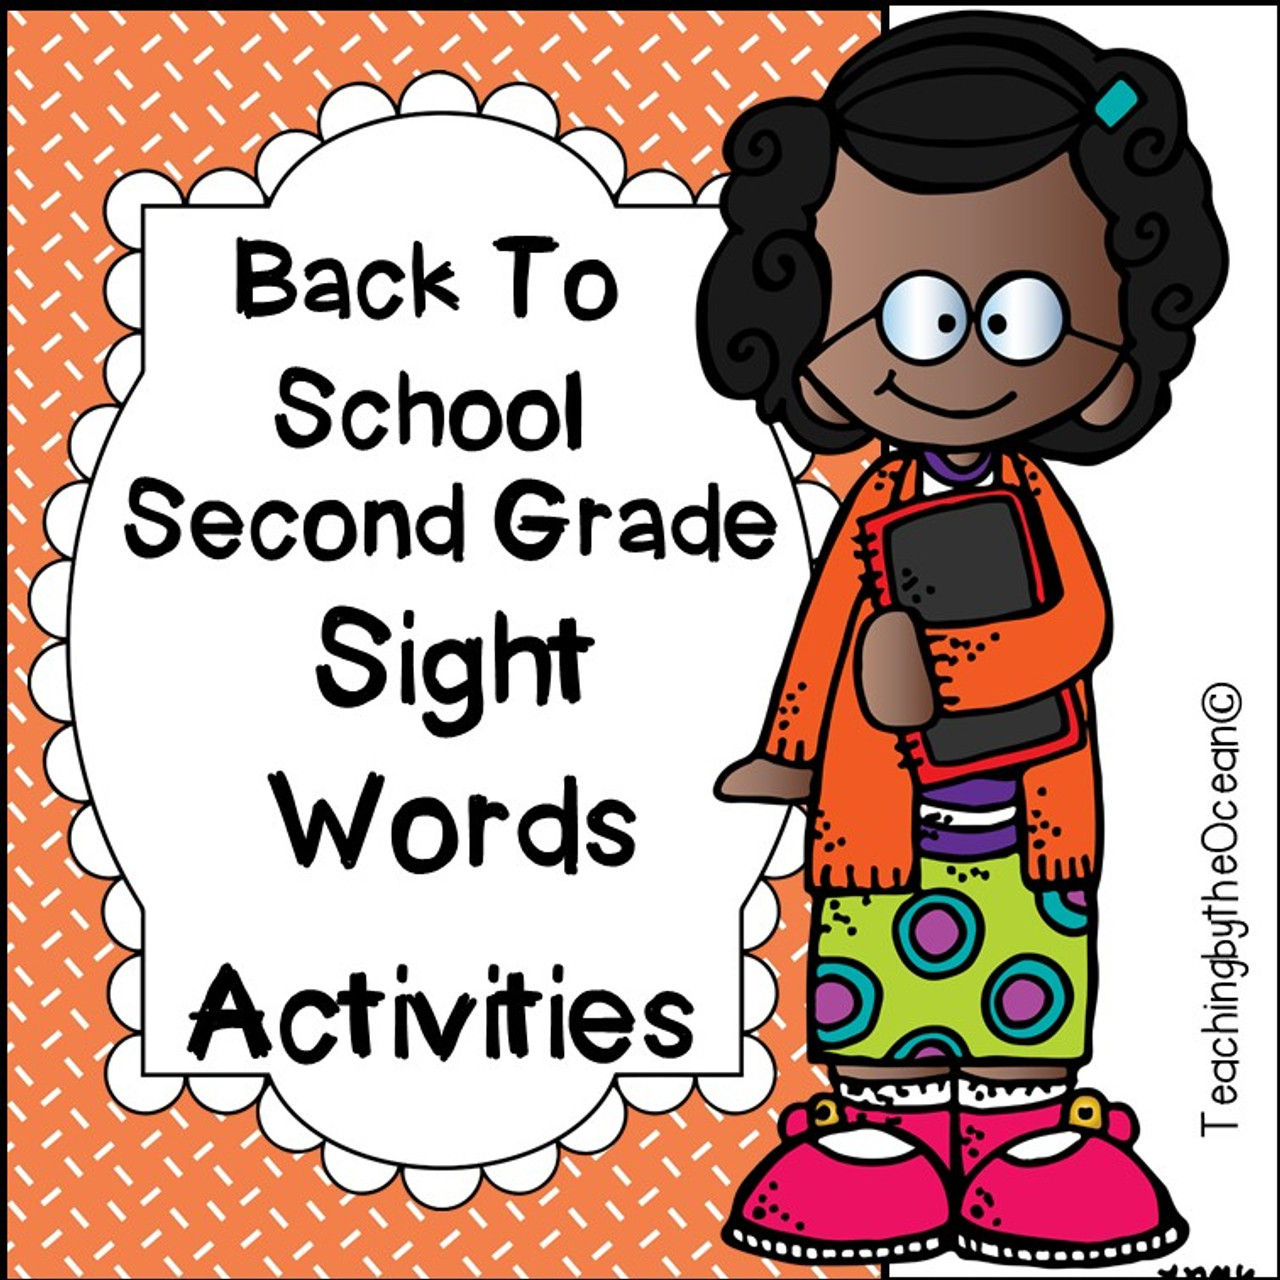 Second Grade Sight Words Worksheets - Back to School Themed - Amped Up  Learning [ 1280 x 1280 Pixel ]